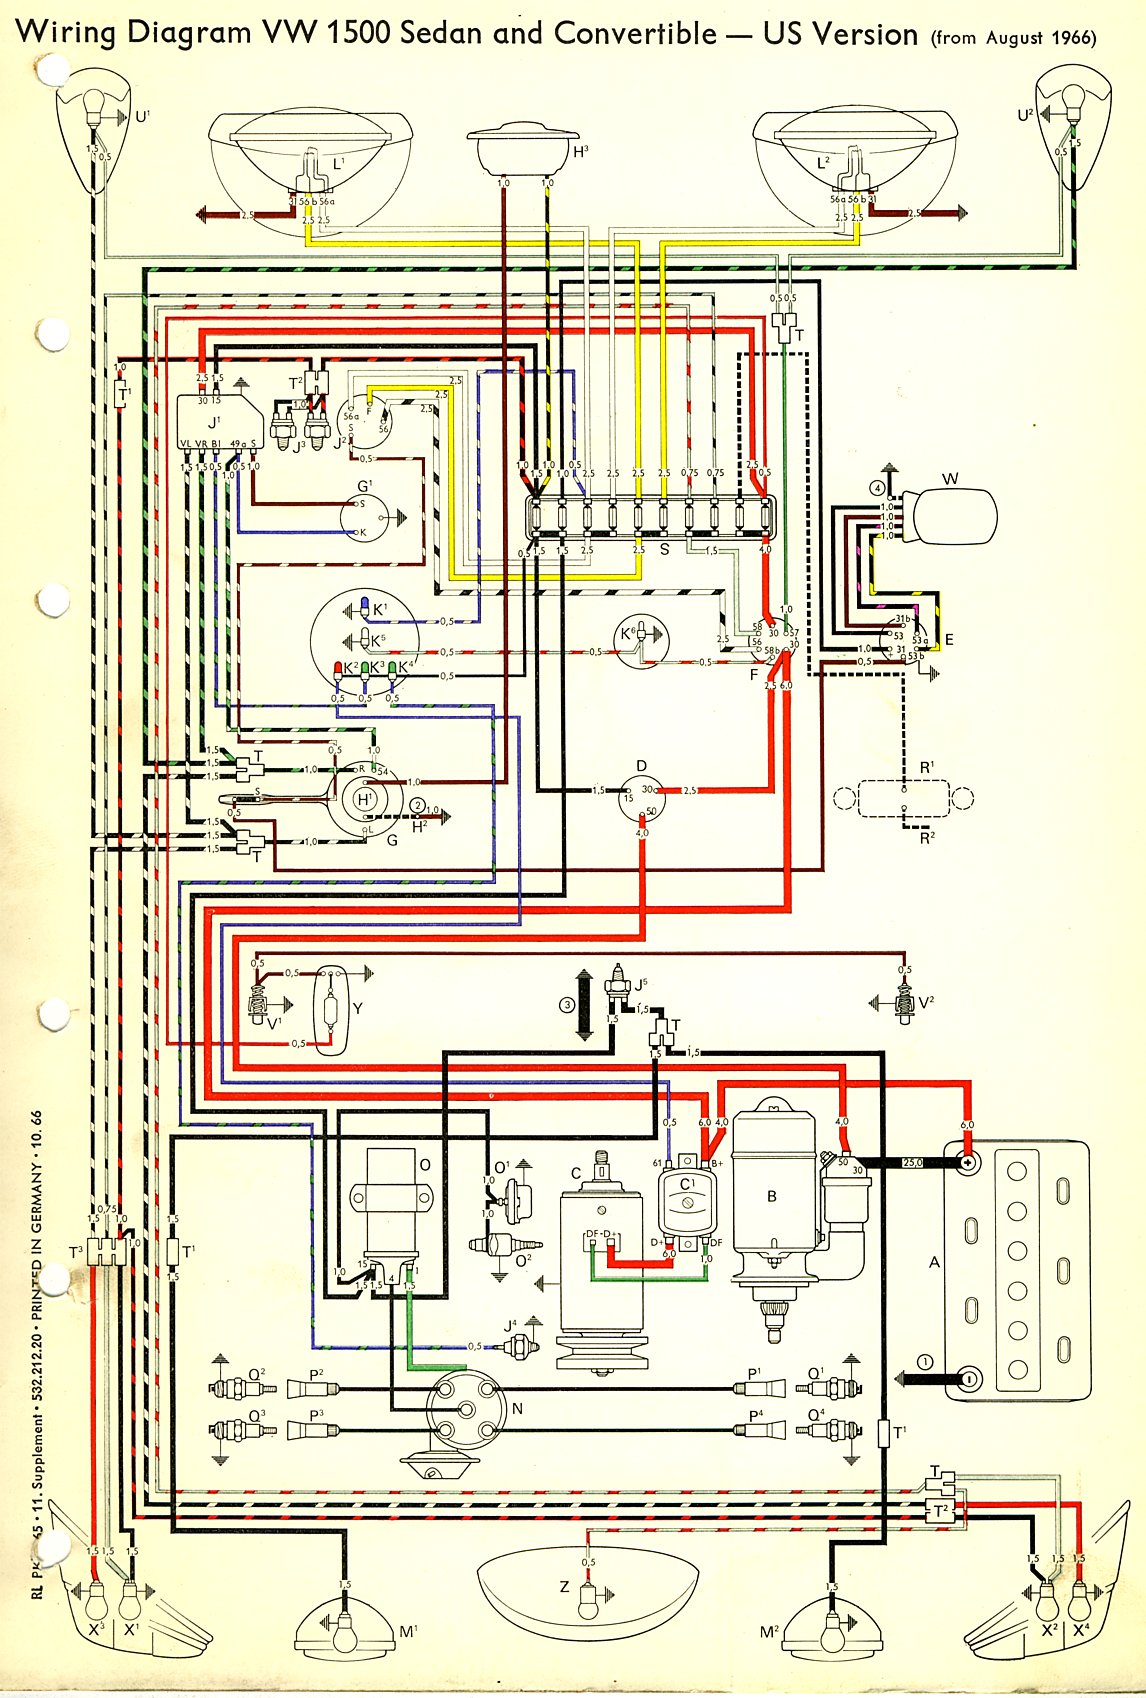 vw t25 battery wiring diagram wiring diagrams and schematics stoem gt wiring up a splitcharge relay and second battery vw t25 wiring schematic